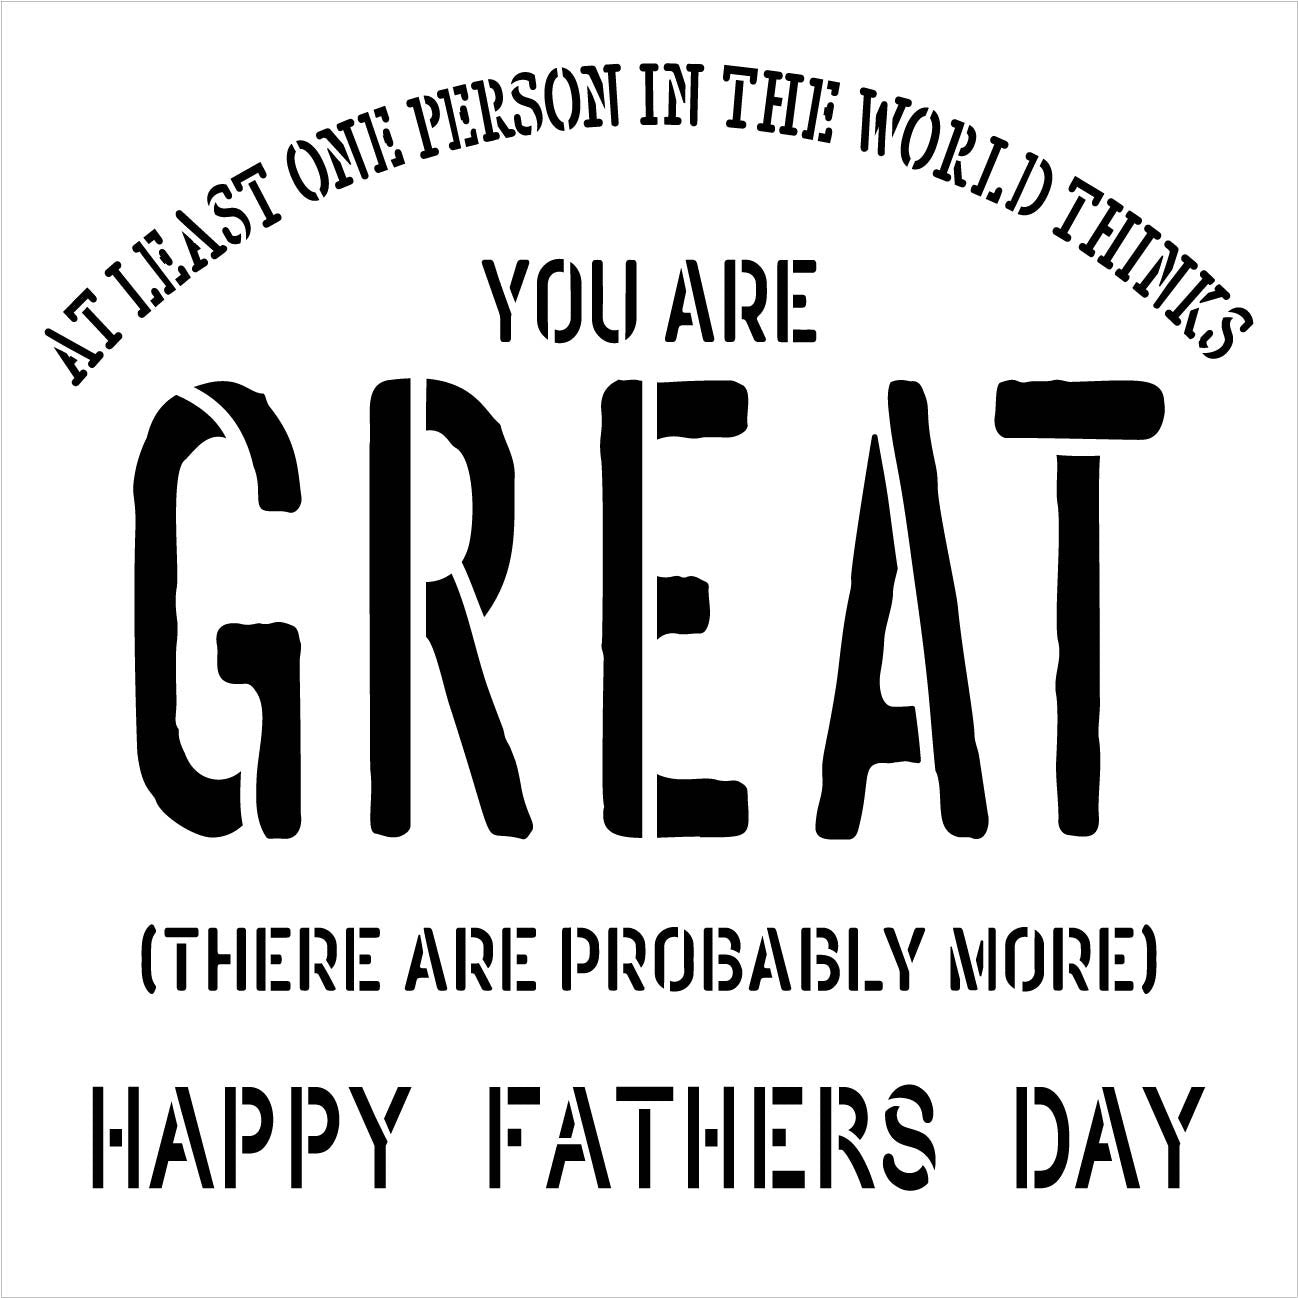 Happy Fathers Day You are Great Stencil by Studio R12 | for Wood Sign | Word Art Reusable | Fall Decor | Family Dining | Painting Chalk Mixed Multi-Media | DIY Home - Choose Size